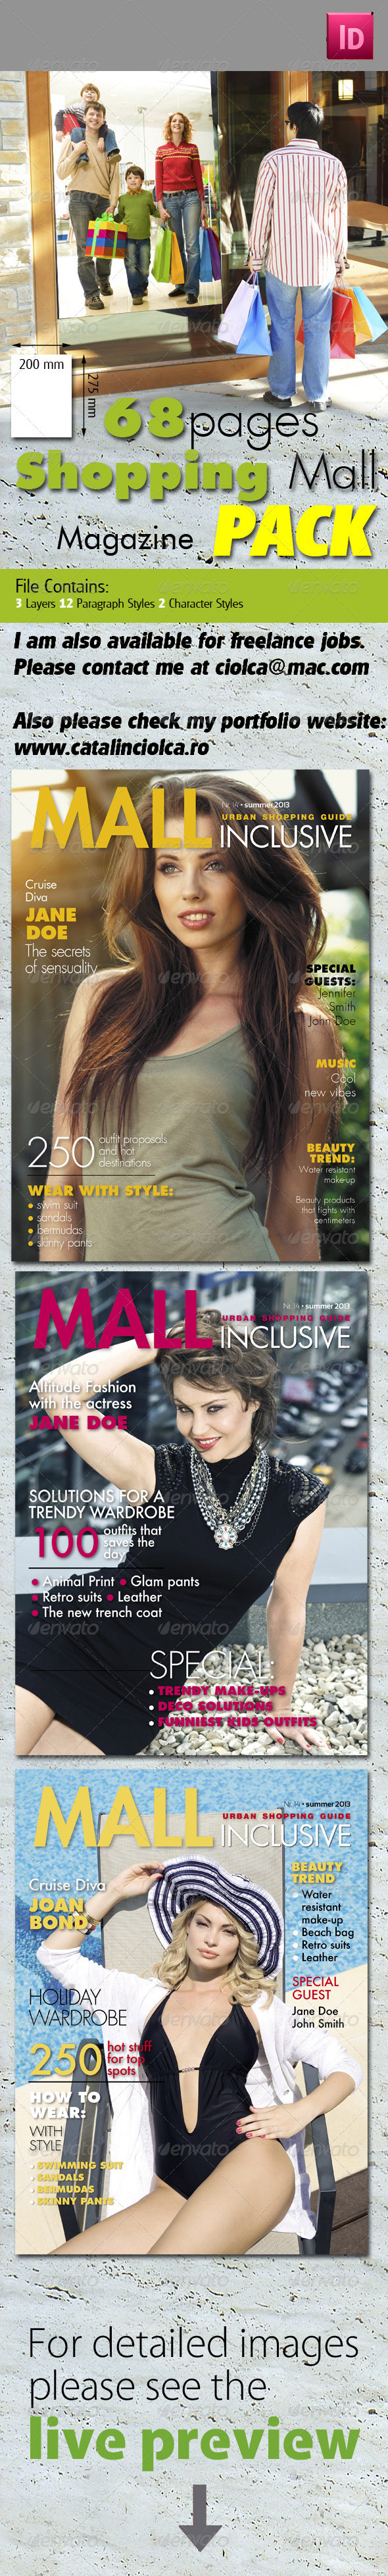 68 Pages Shopping Mall Magazine Pack - Magazines Print Templates